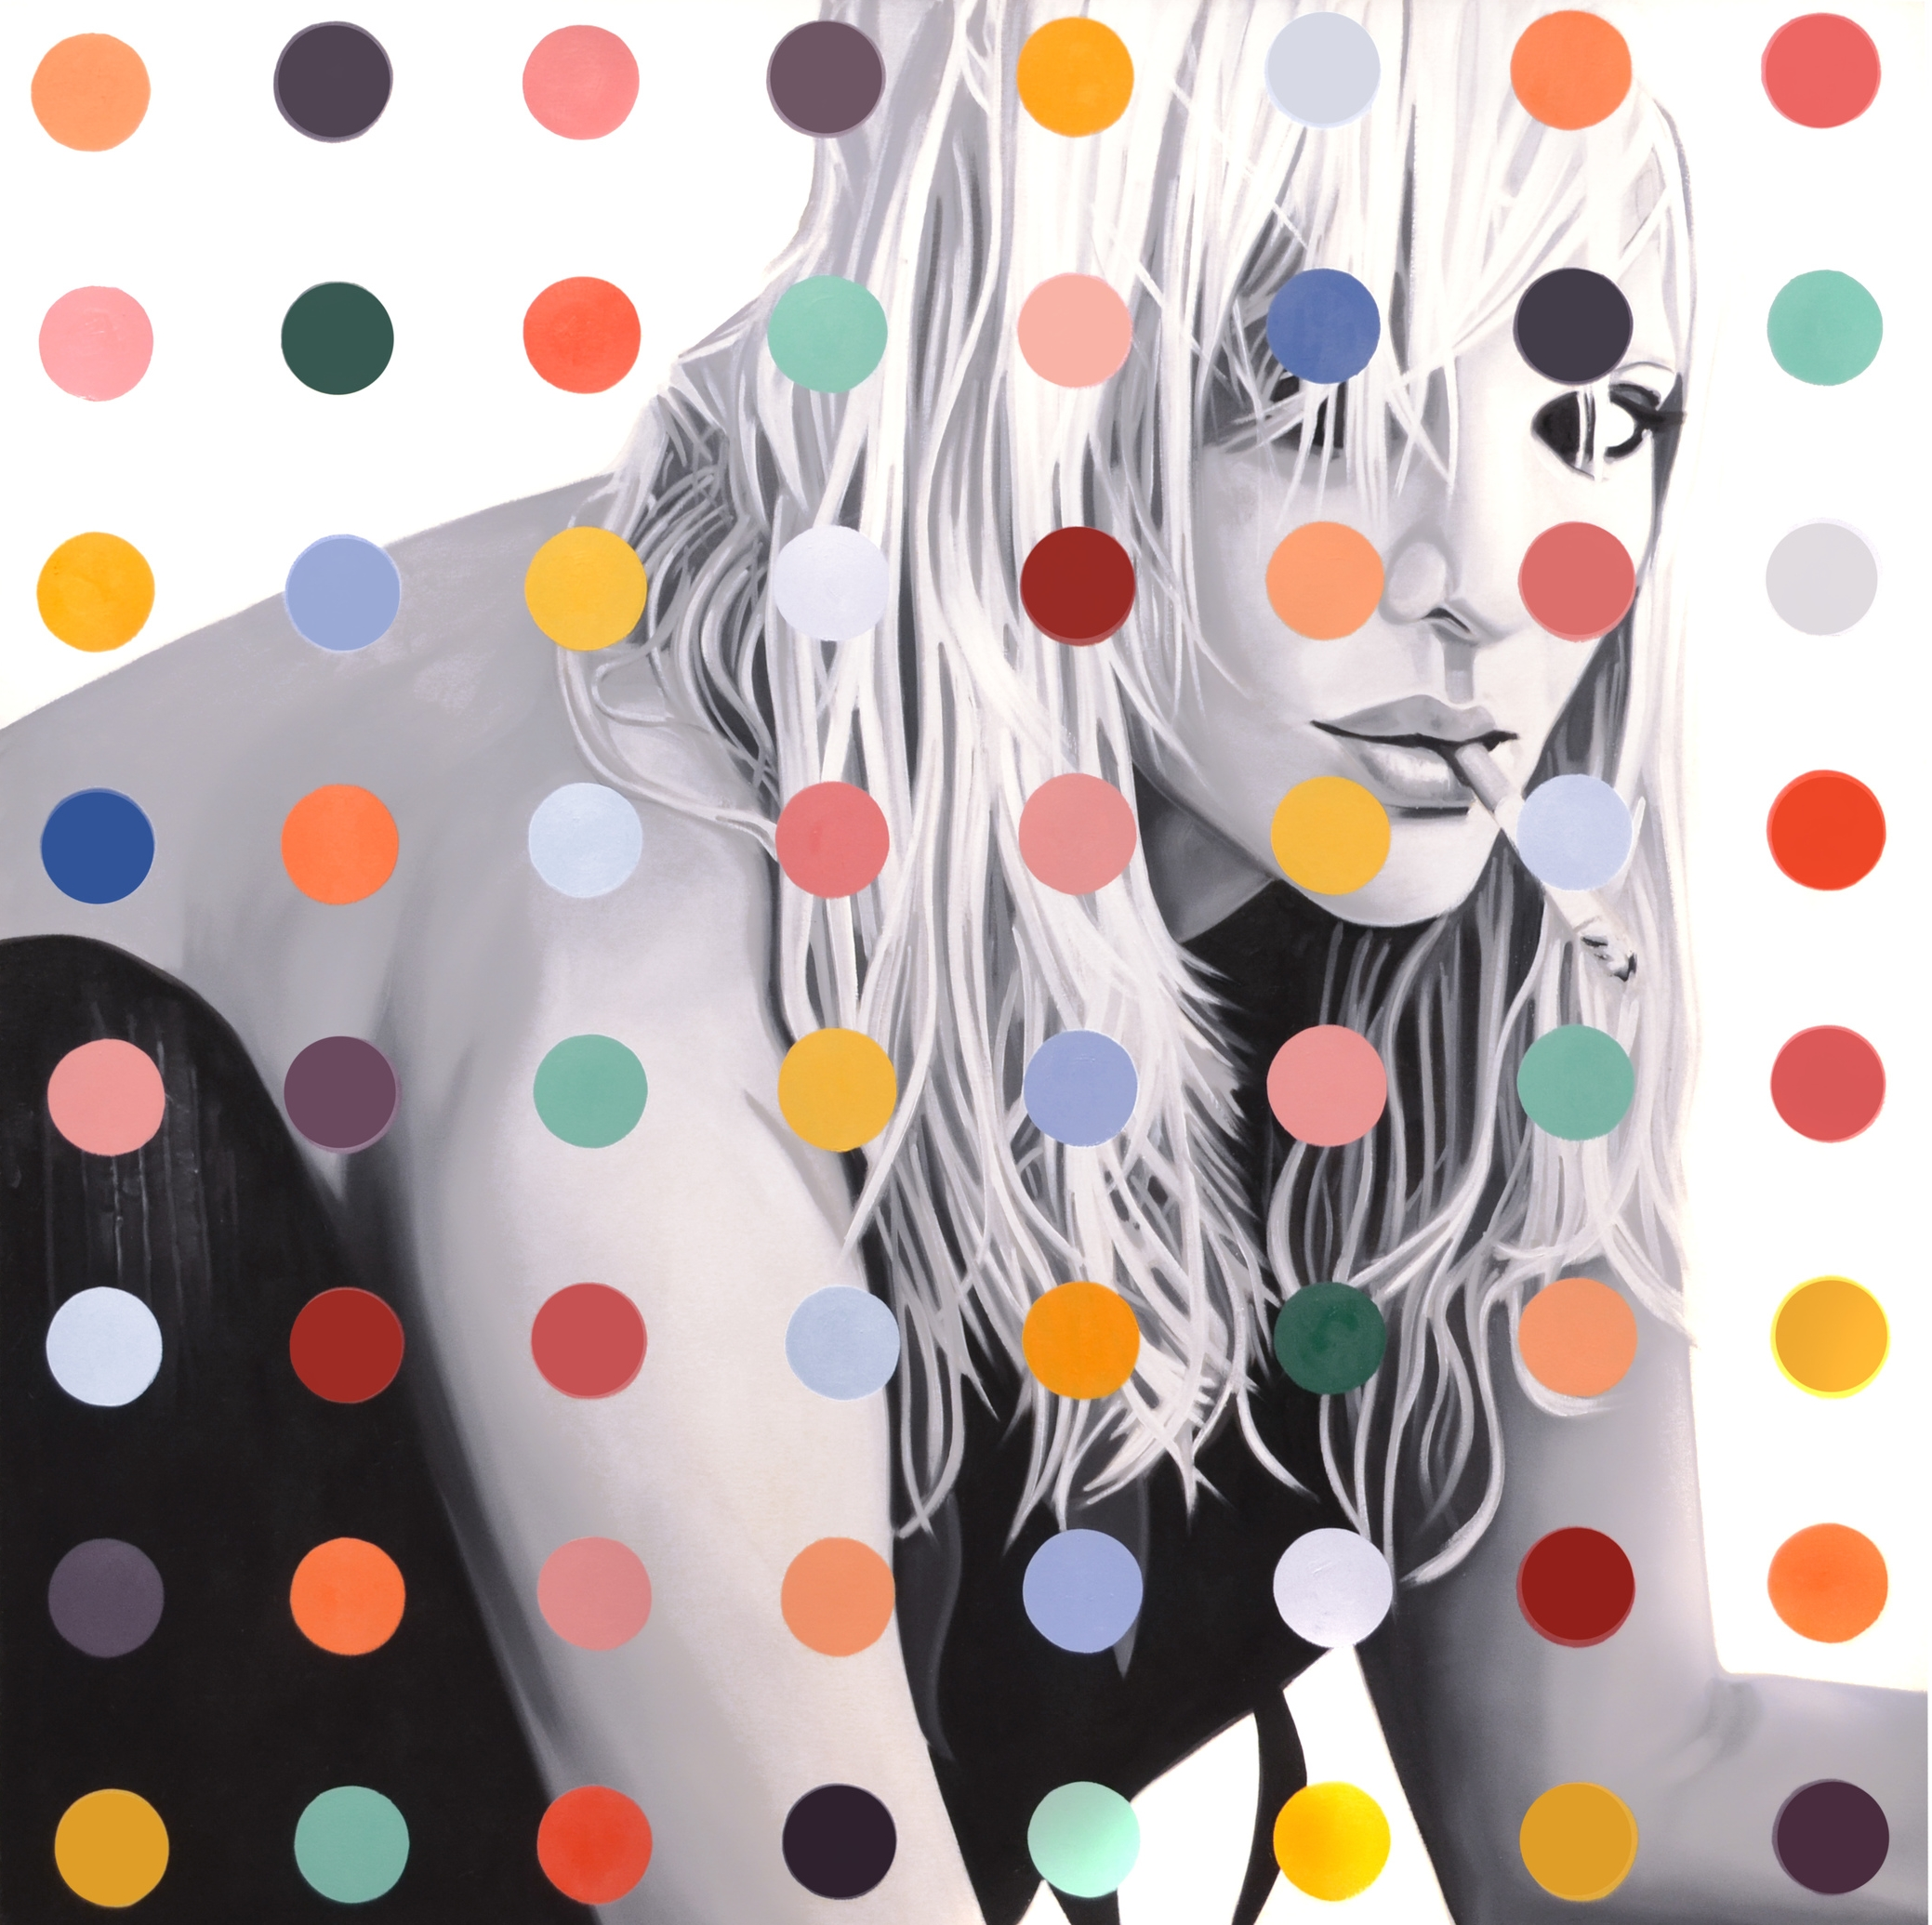 Courtney Dot  Oil on Canvas  -  48 x 48in  -  2013                                           SOLD